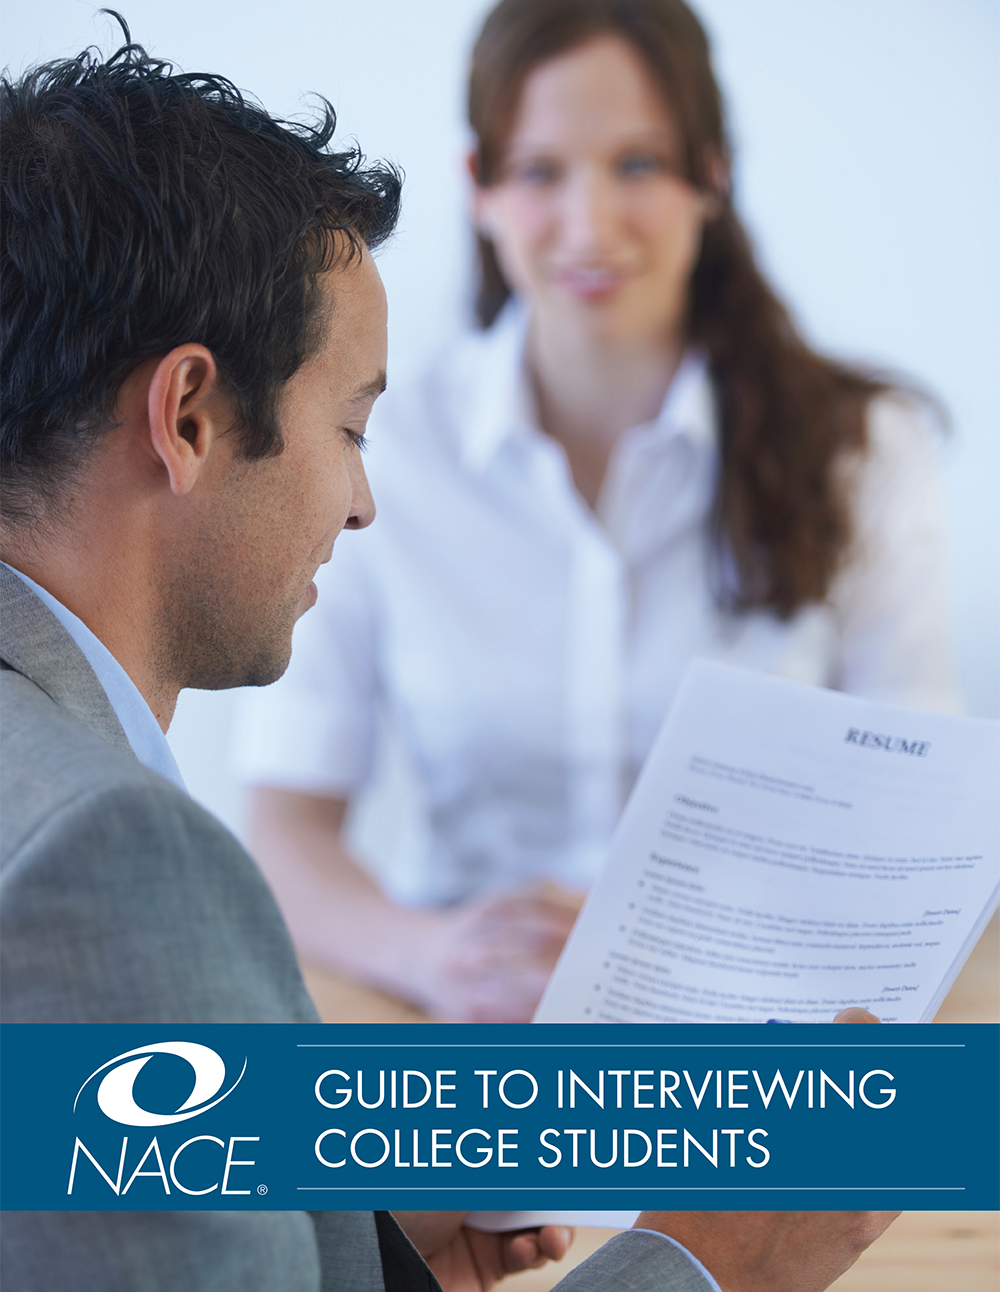 Guide to Interviewing College Students